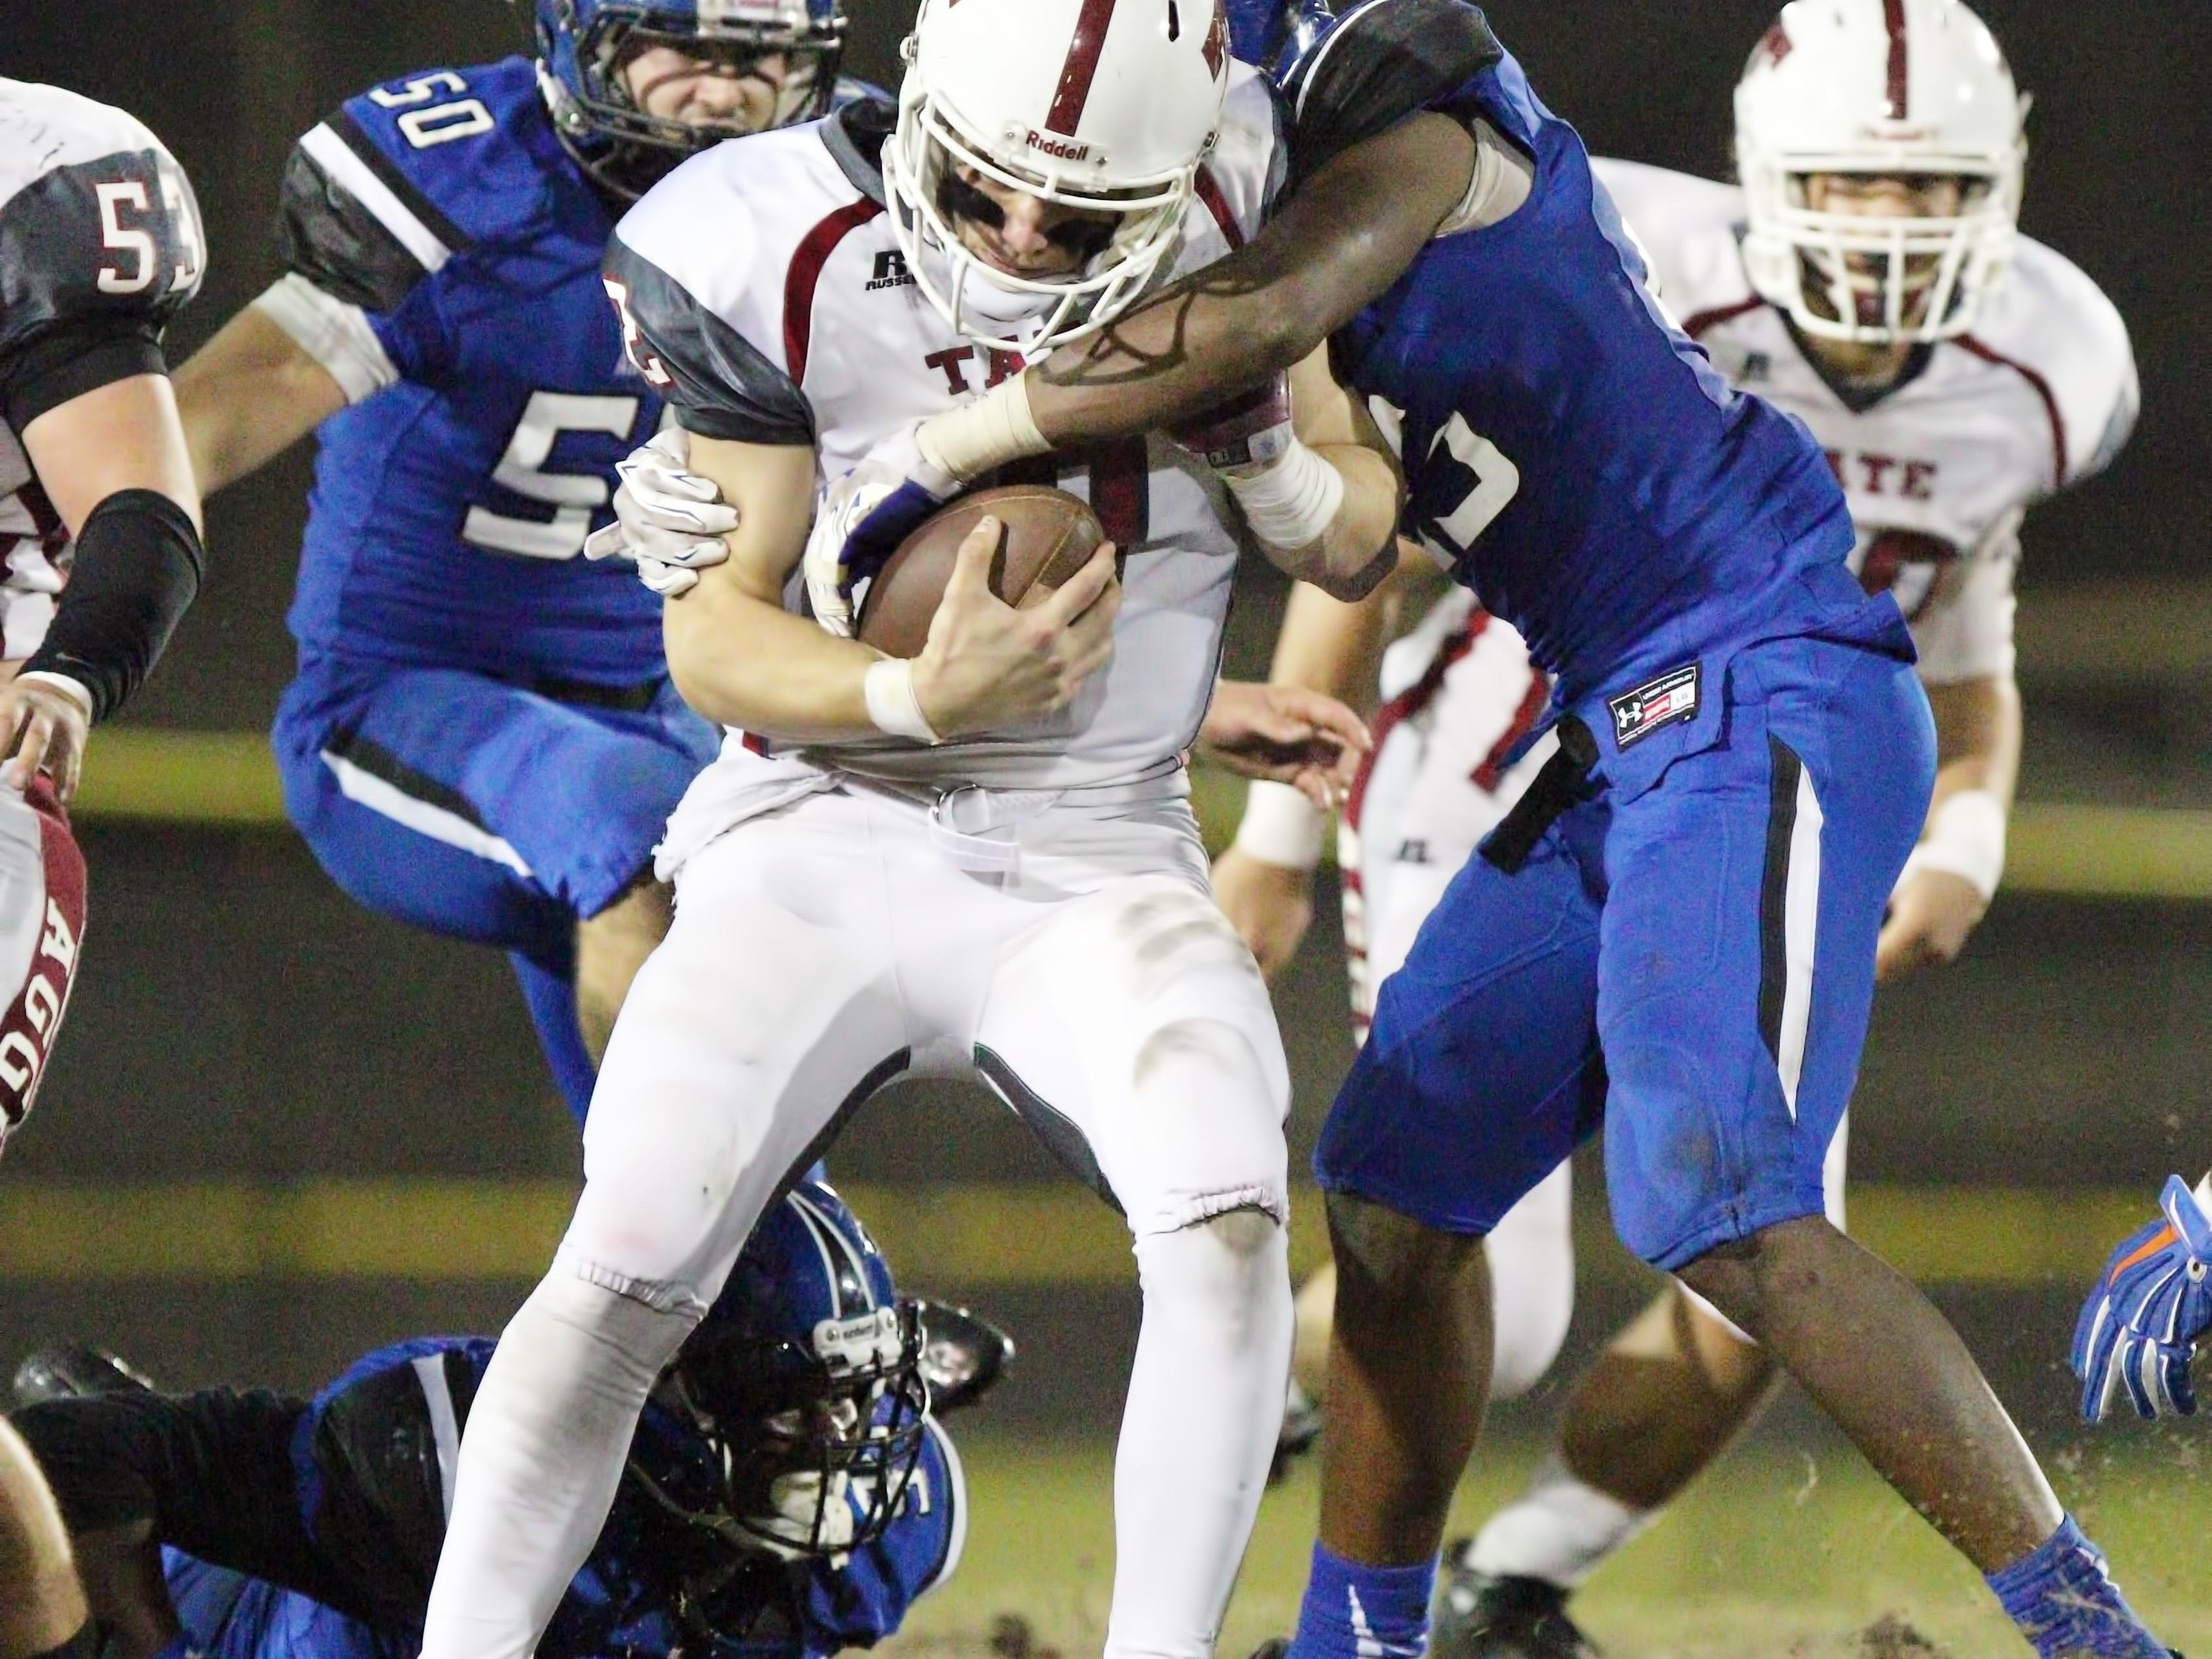 SEFFNER, FL. 12/4/2015 -- Armwood Hawks linebacker C.J. Jones pulls down Tate quarterback Sawyer Smith for a sack during the second half of Friday's Class 6A state semifinals game at Lyle Flagg Field. The Hawks went on to defeat the Aggies 53-19 to advance to the stat title game Saturday in Orlando. Photo by BILL WARD/PNJ